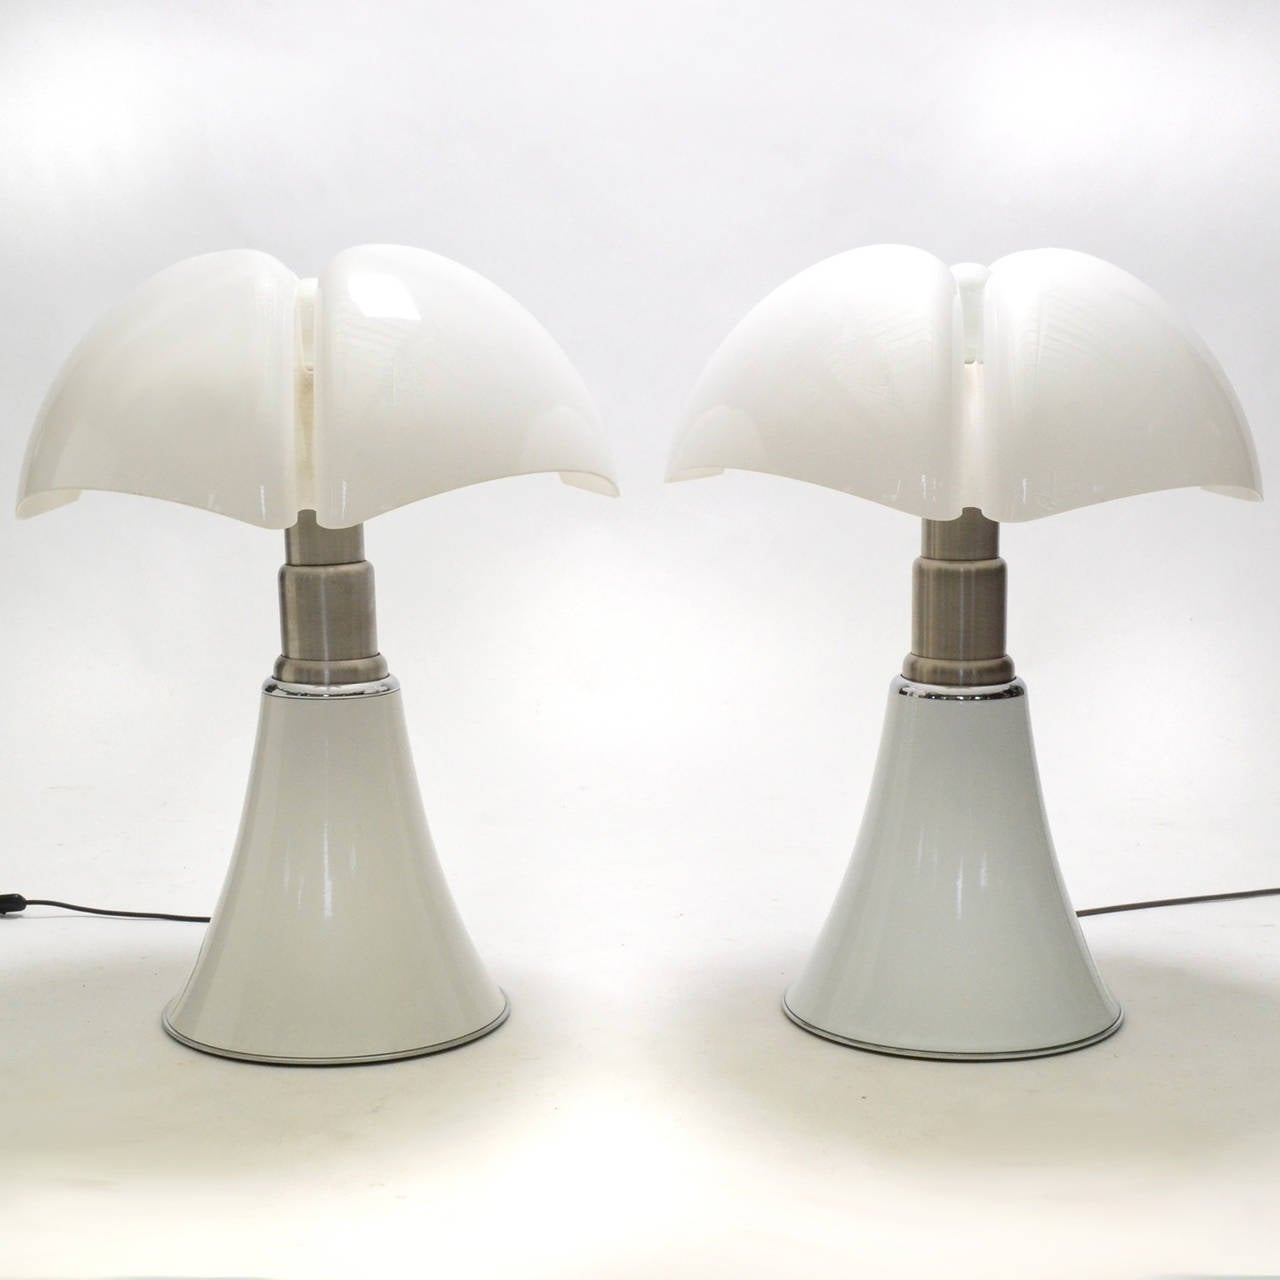 Mid-20th Century Pair of Gae Aulenti Pipistrello Table Lamps For Sale